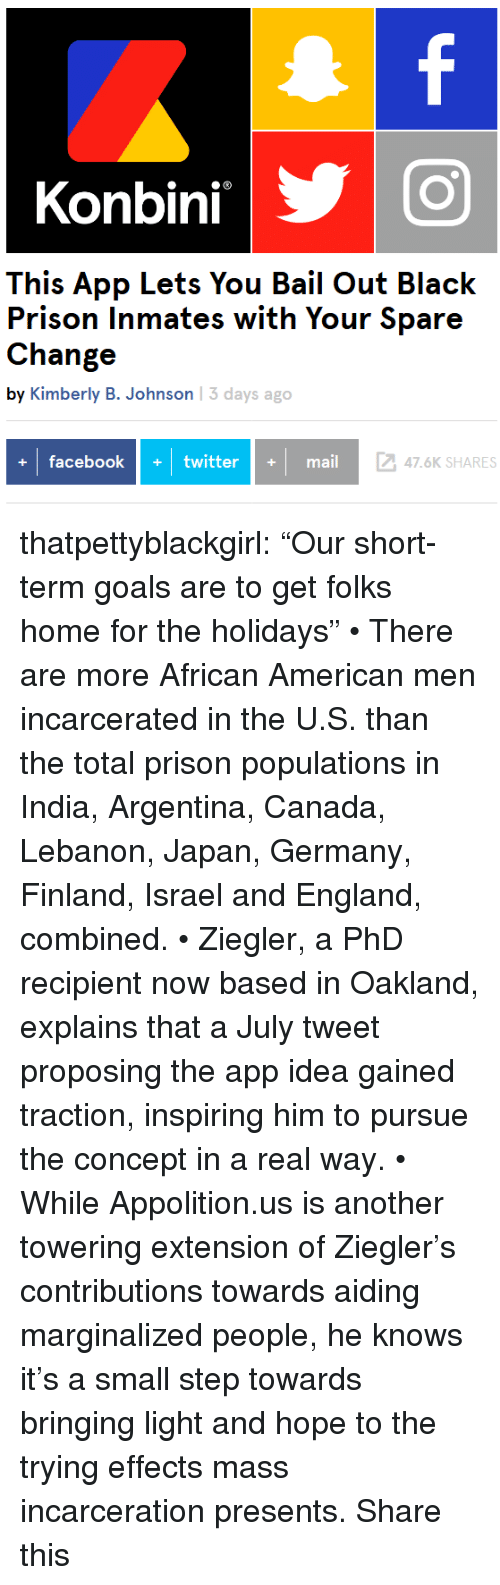 """England, Facebook, and Goals: Konbini  This App Lets You Bail Out Black  Prison Inmates with Your Spare  Change  by Kimberly B. Johnson 13 days ago  facebook+twittermail  247.6K SHARES thatpettyblackgirl: """"Our short-term goals are to get folks home for the holidays"""" • There are more African American men incarcerated in the U.S. than the total prison populations in India, Argentina, Canada, Lebanon, Japan, Germany, Finland, Israel and England, combined. • Ziegler, a PhD recipient now based in Oakland, explains that a July tweet proposing the app idea gained traction, inspiring him to pursue the concept in a real way. • While Appolition.us is another towering extension of Ziegler's contributions towards aiding marginalized people, he knows it's a small step towards bringing light and hope to the trying effects mass incarceration presents.  Share this"""